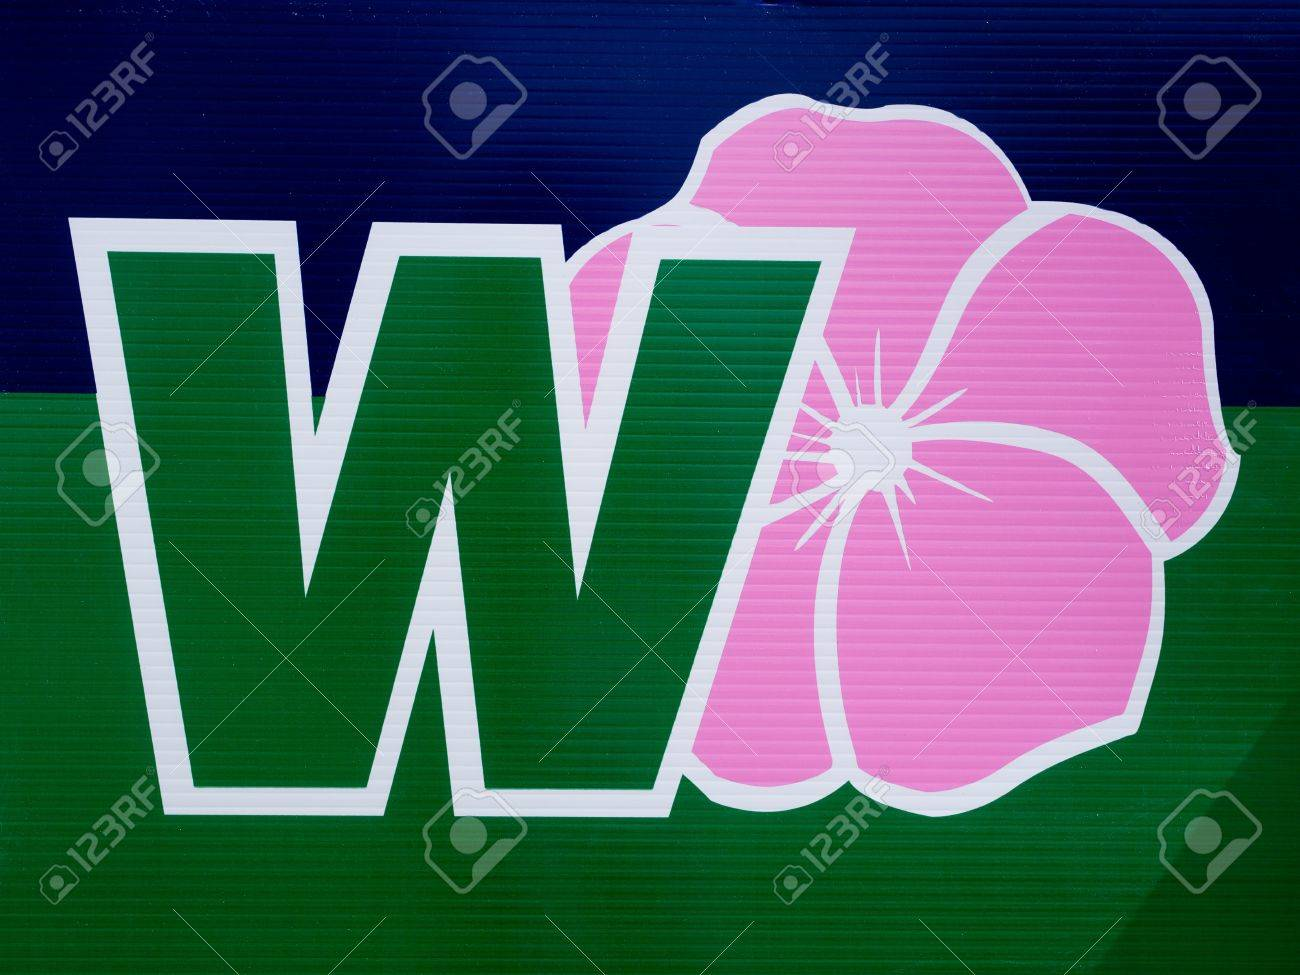 Wild Rose Alberta party logo on outdoor sign during election, April 2012 Stock Photo - 13154600